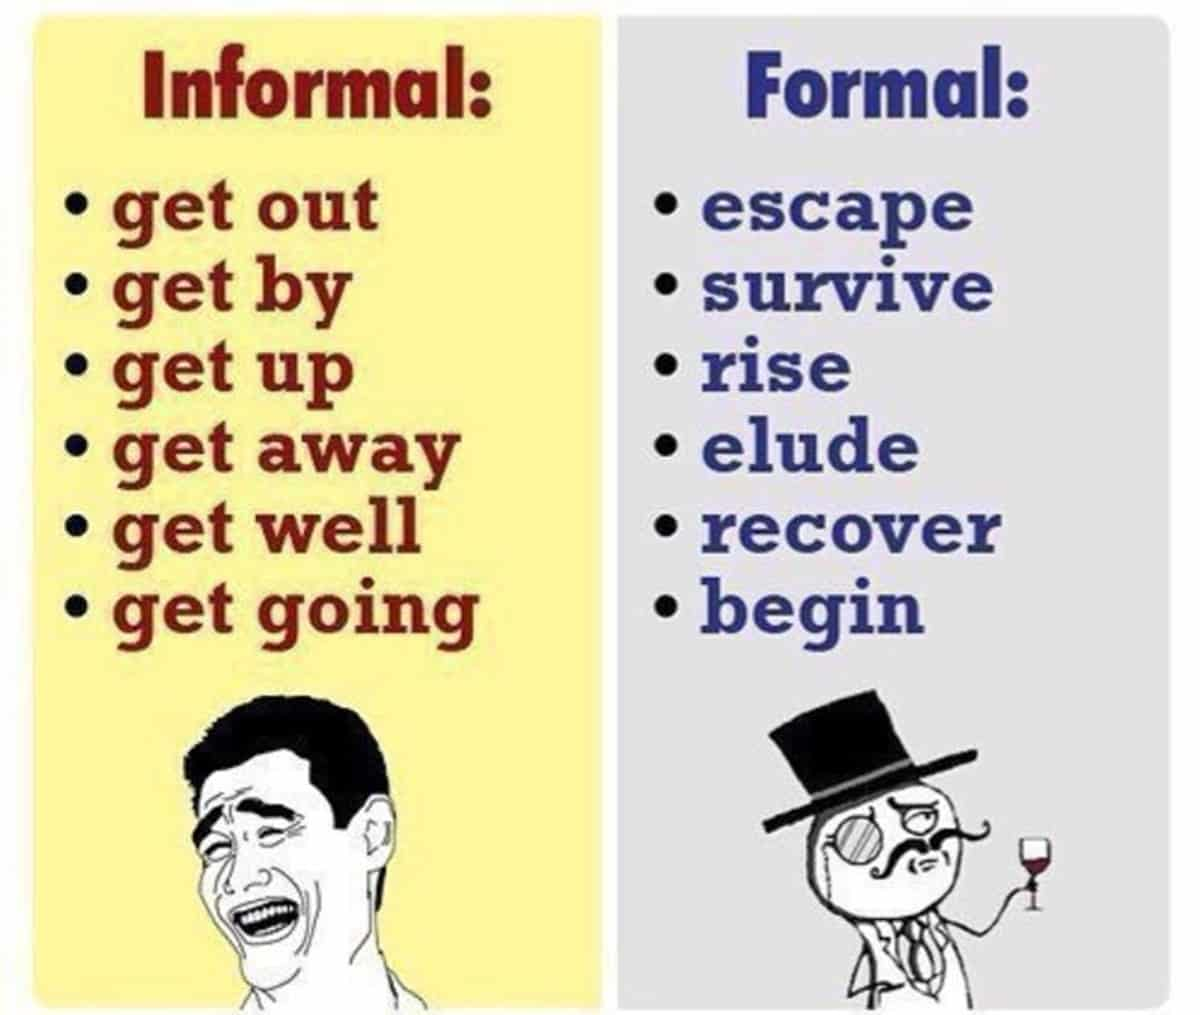 Informal and Formal English: What's the Difference? 15